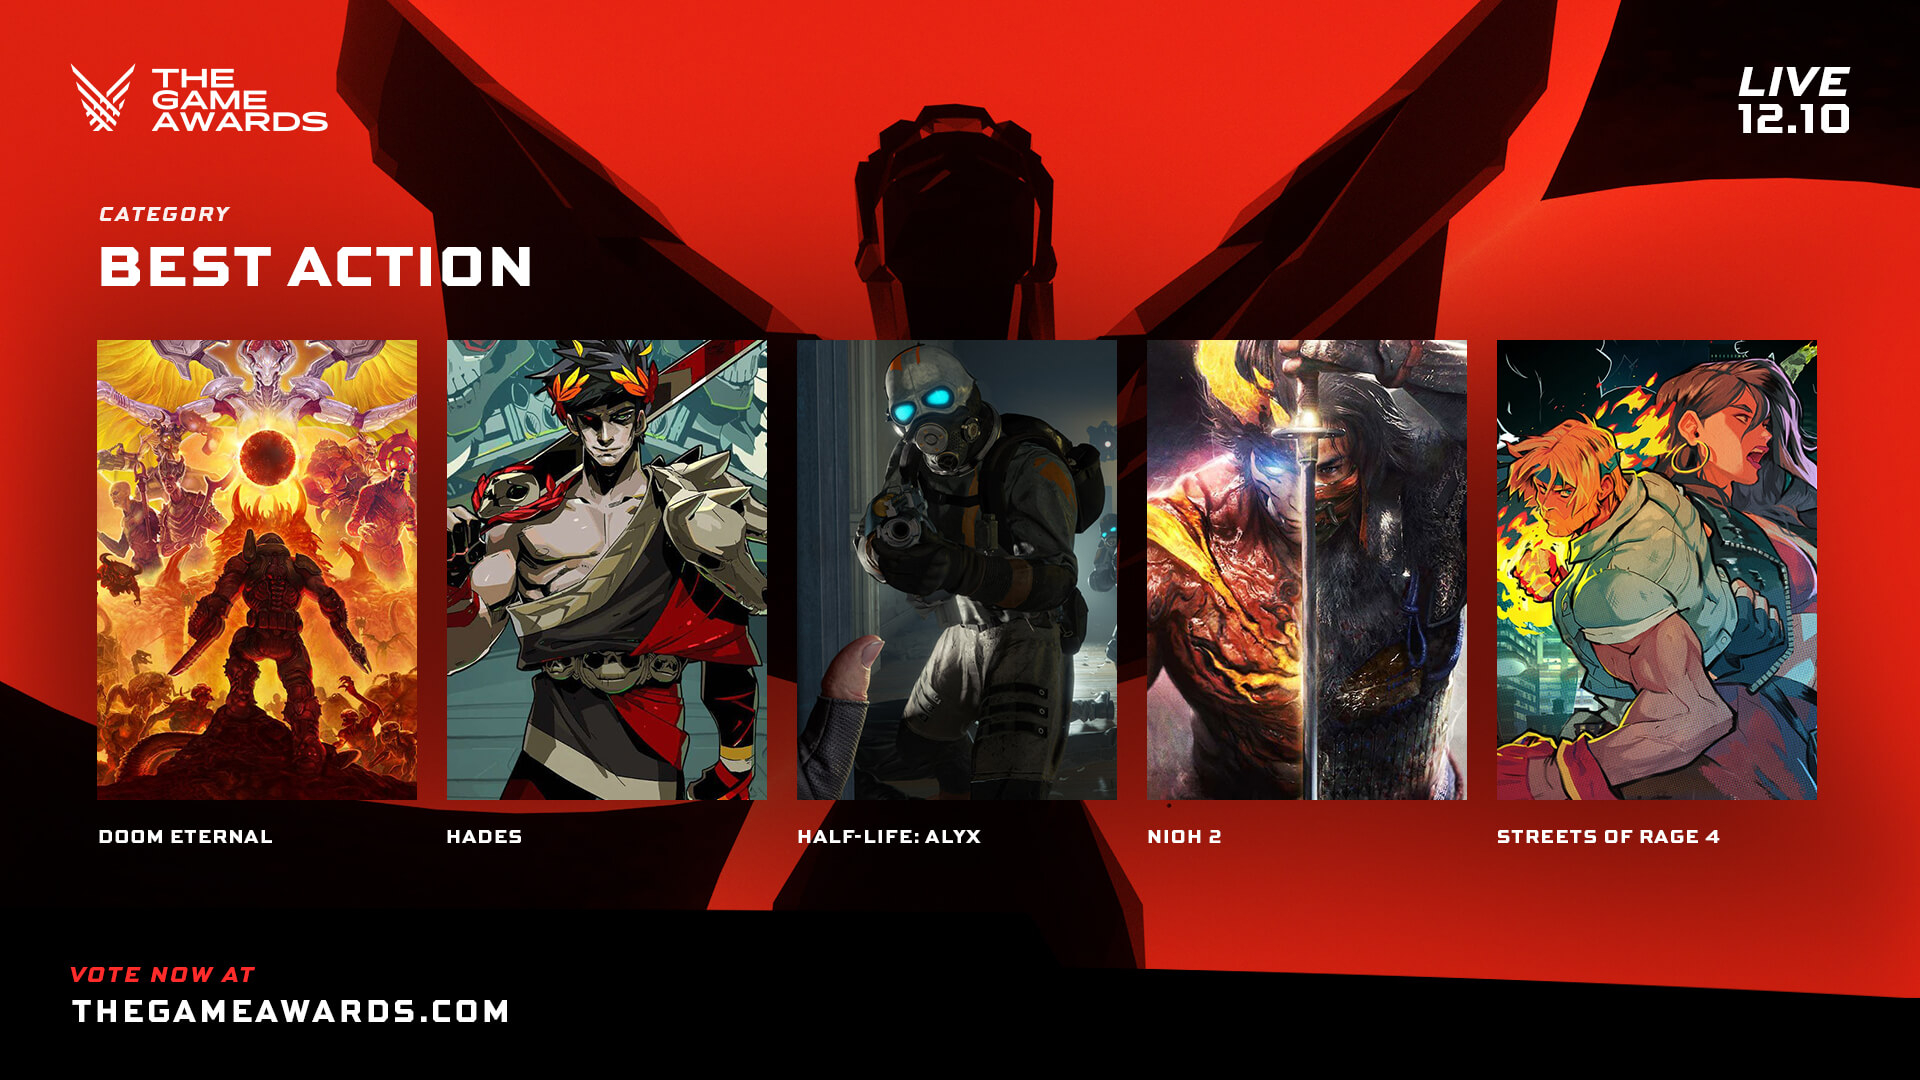 Nominees The Game Awards